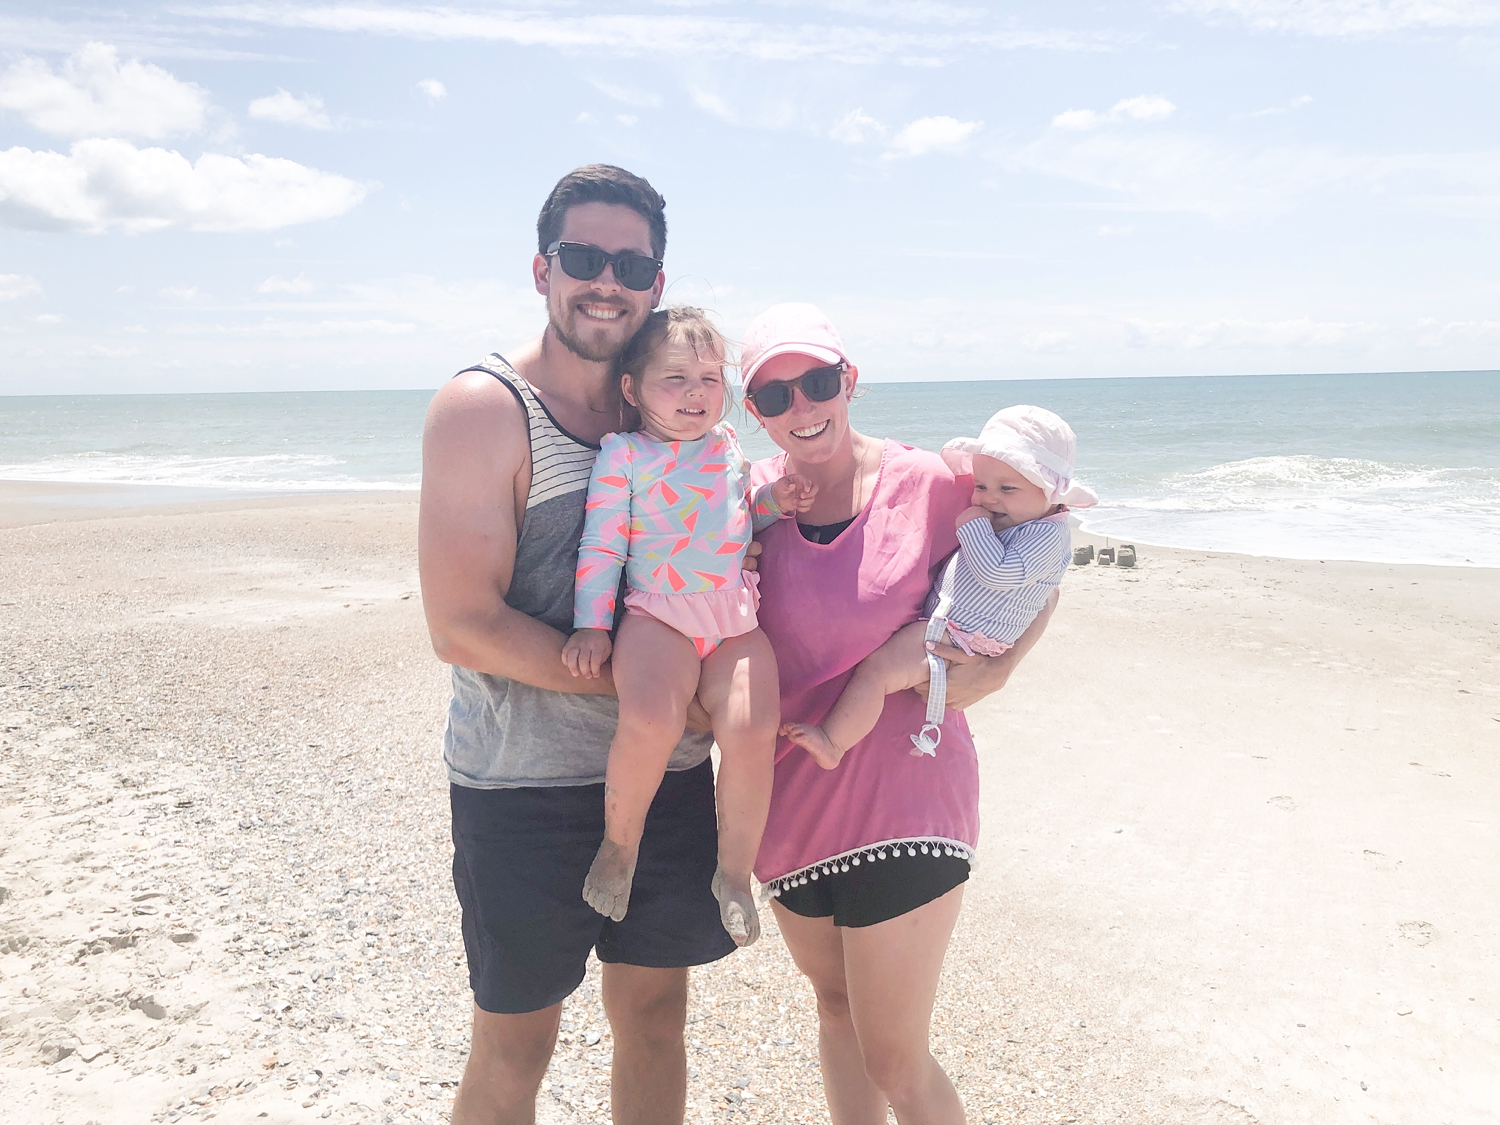 AF667356-6E45-4F25-B6D0-751478A7BEB9_Maryland-family-beach-photographer-anna-grace-photography-photo.jpg